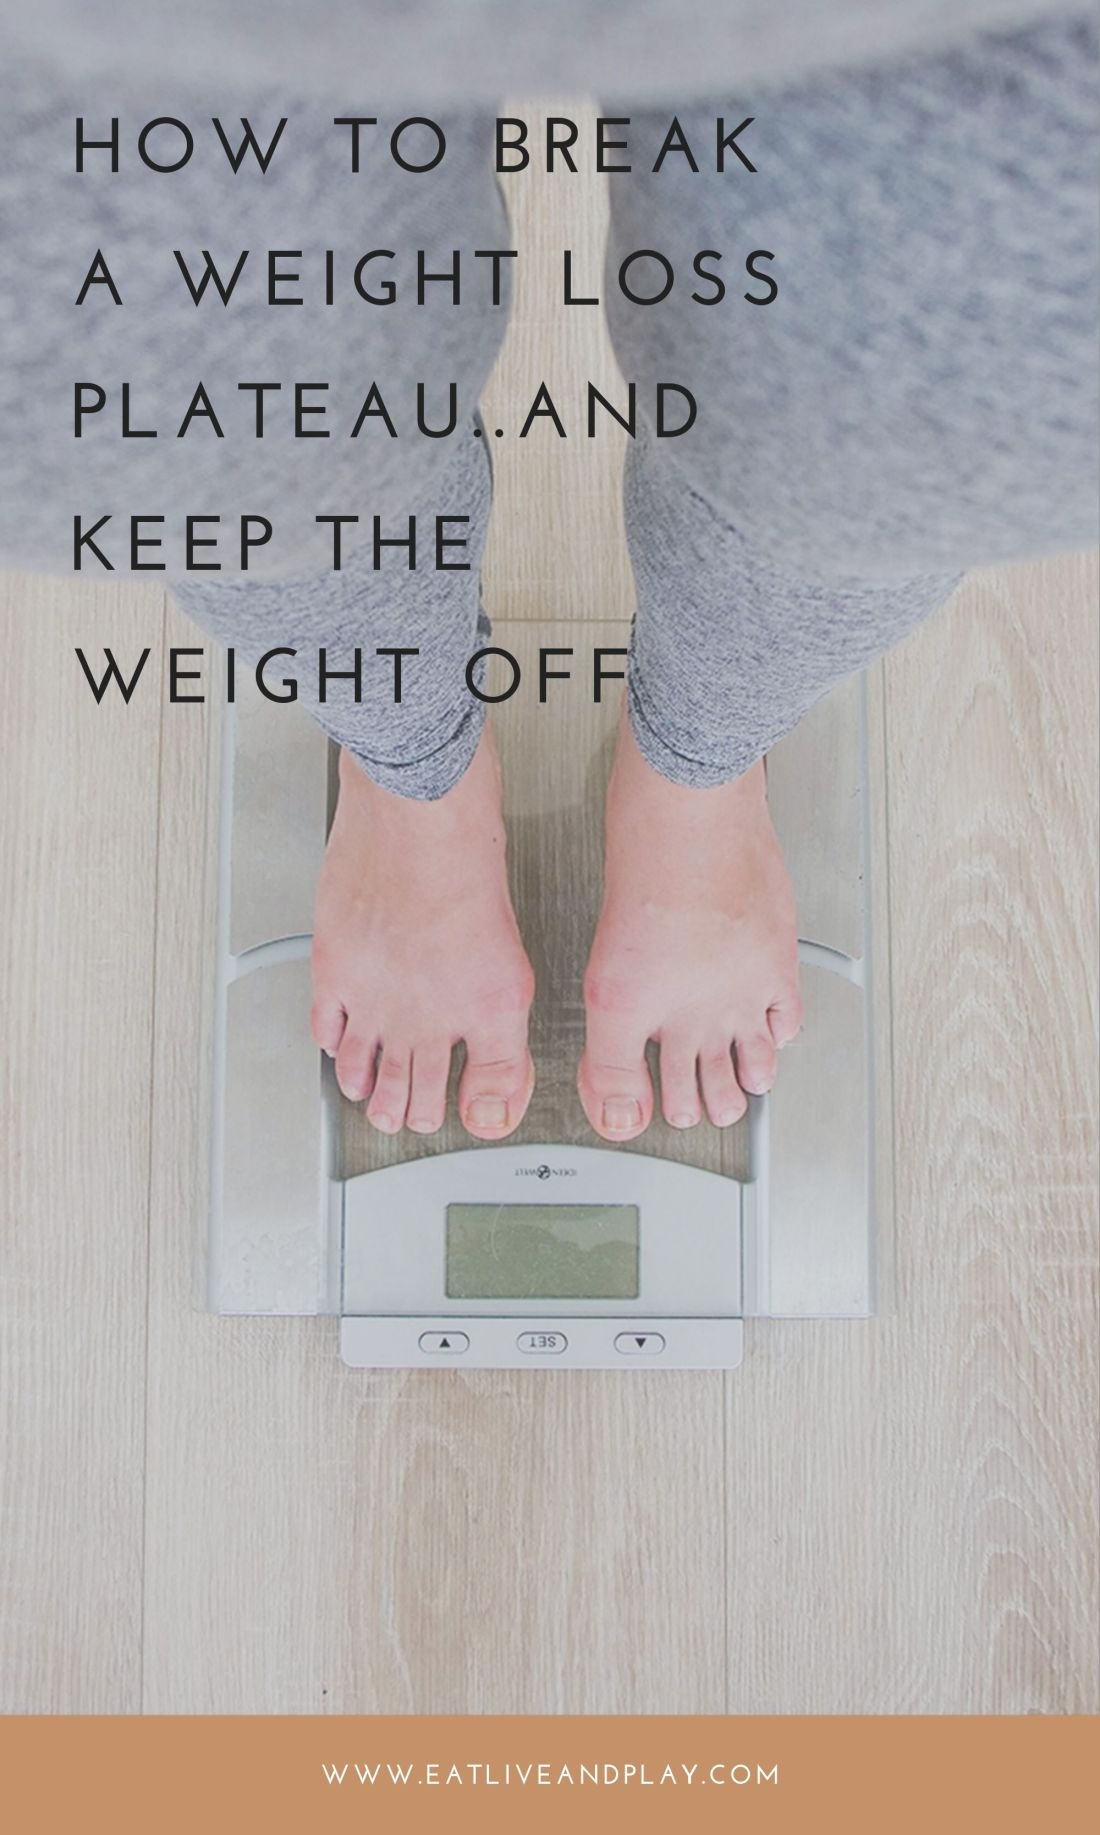 So you've lost some weight and have hit a roadblock. If that's you, I'm going to be talking about how to break a weight loss plateau. This first tip alone may double your weight loss!